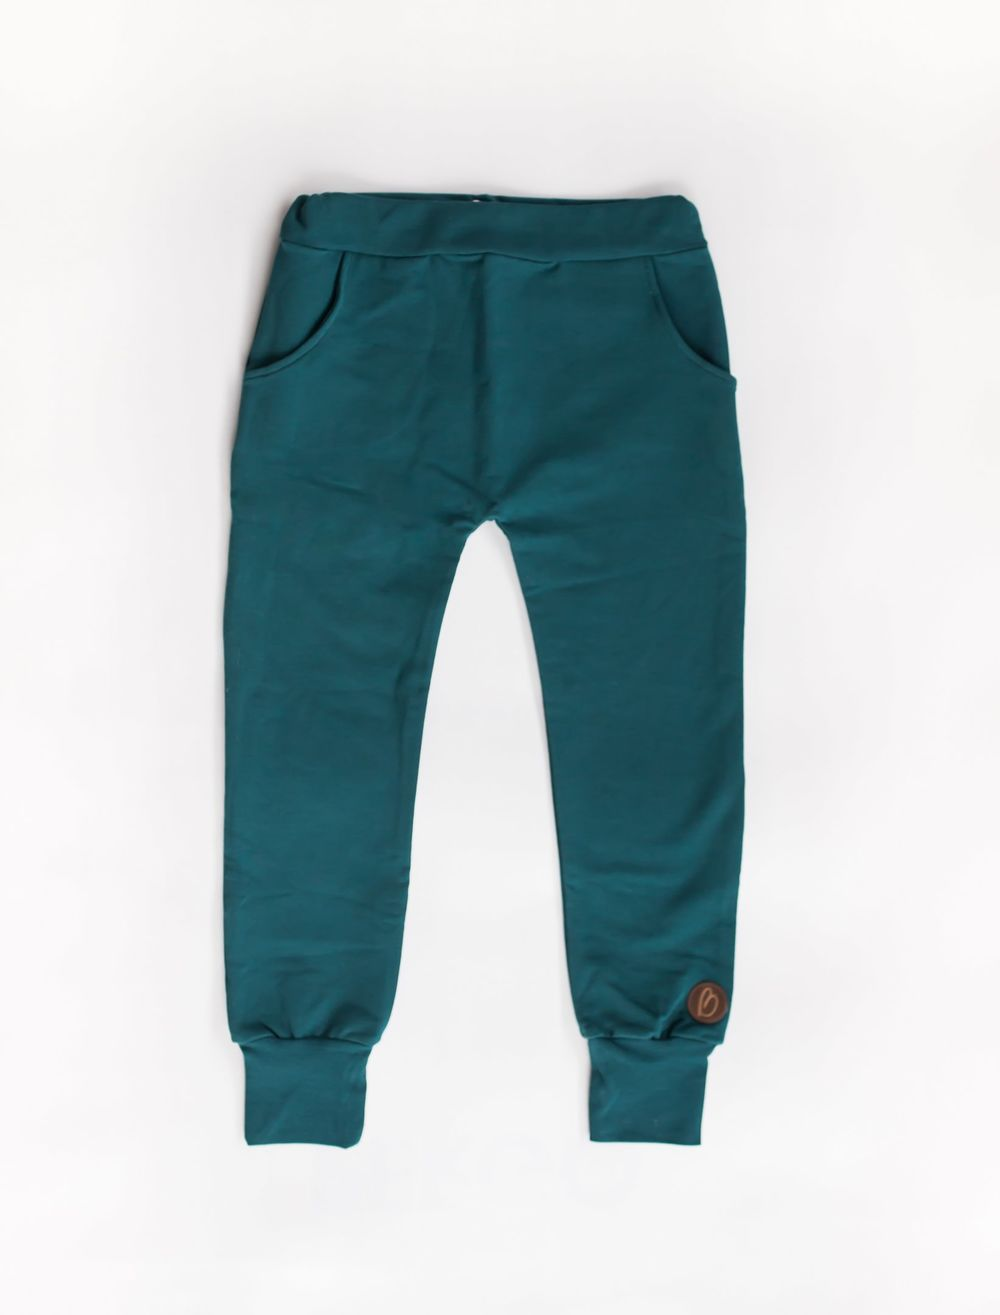 BLAA VALLETTA COLLEGE PANTS, DEEP TEAL